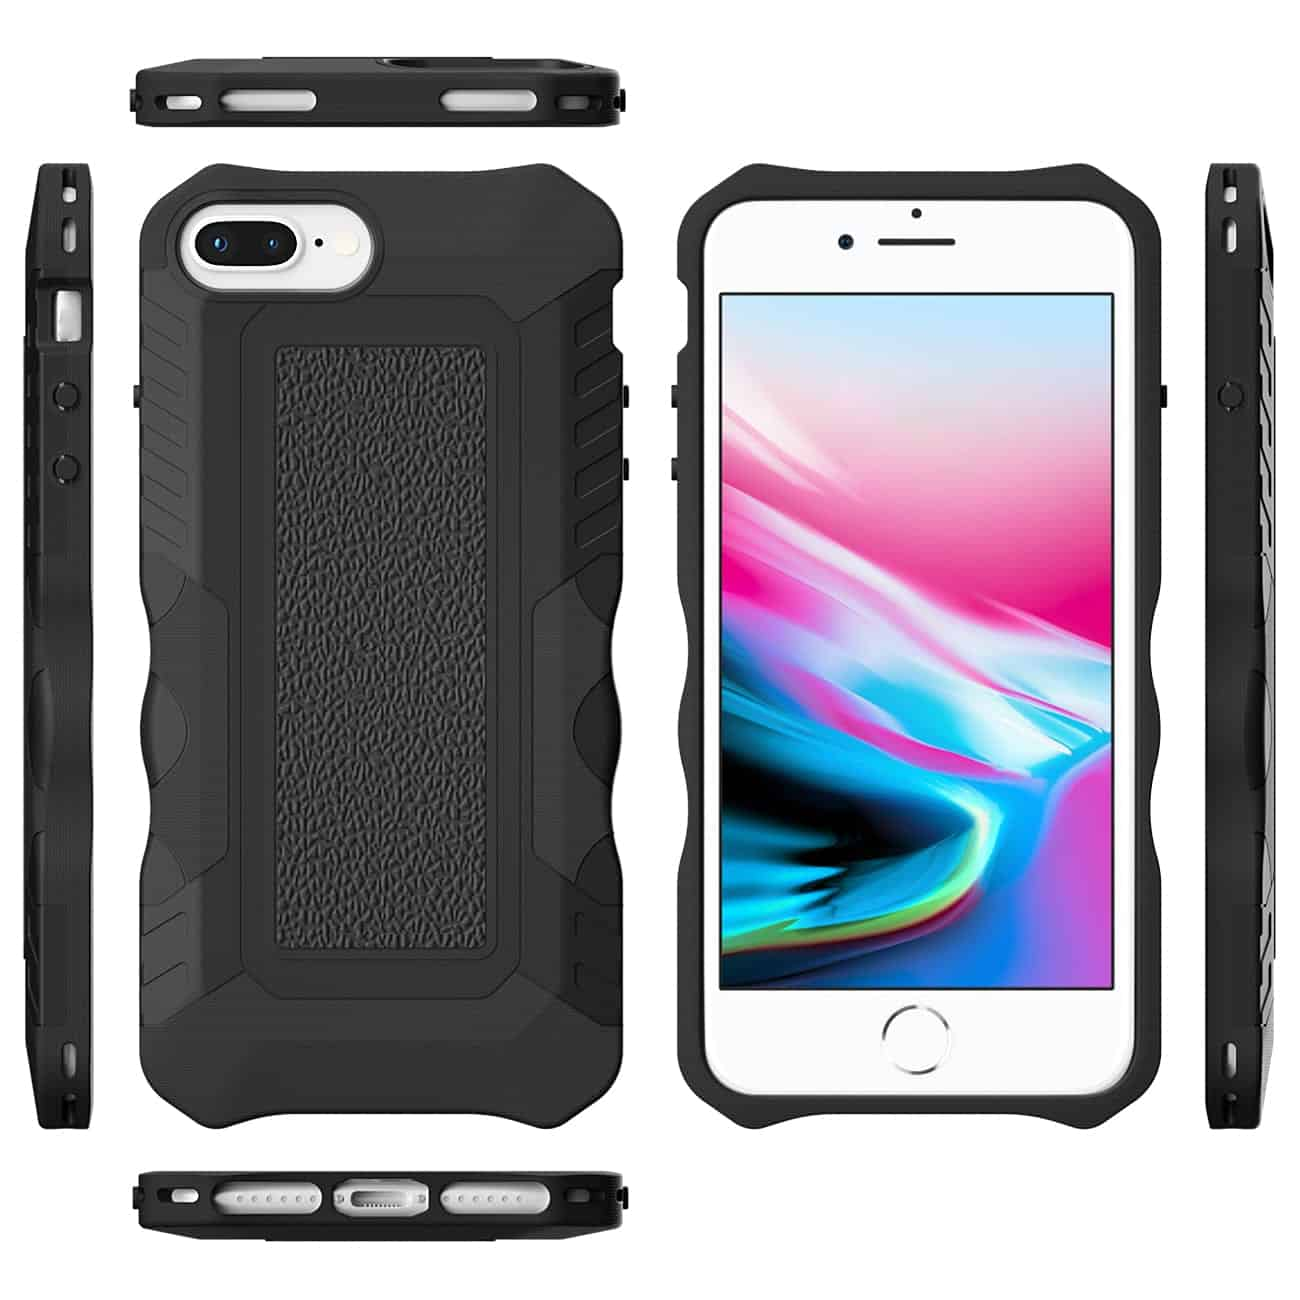 APPLE IPHONE 8 PLUS Slim Shockproof Protective Anti-Slip Heavy duty Case In Black